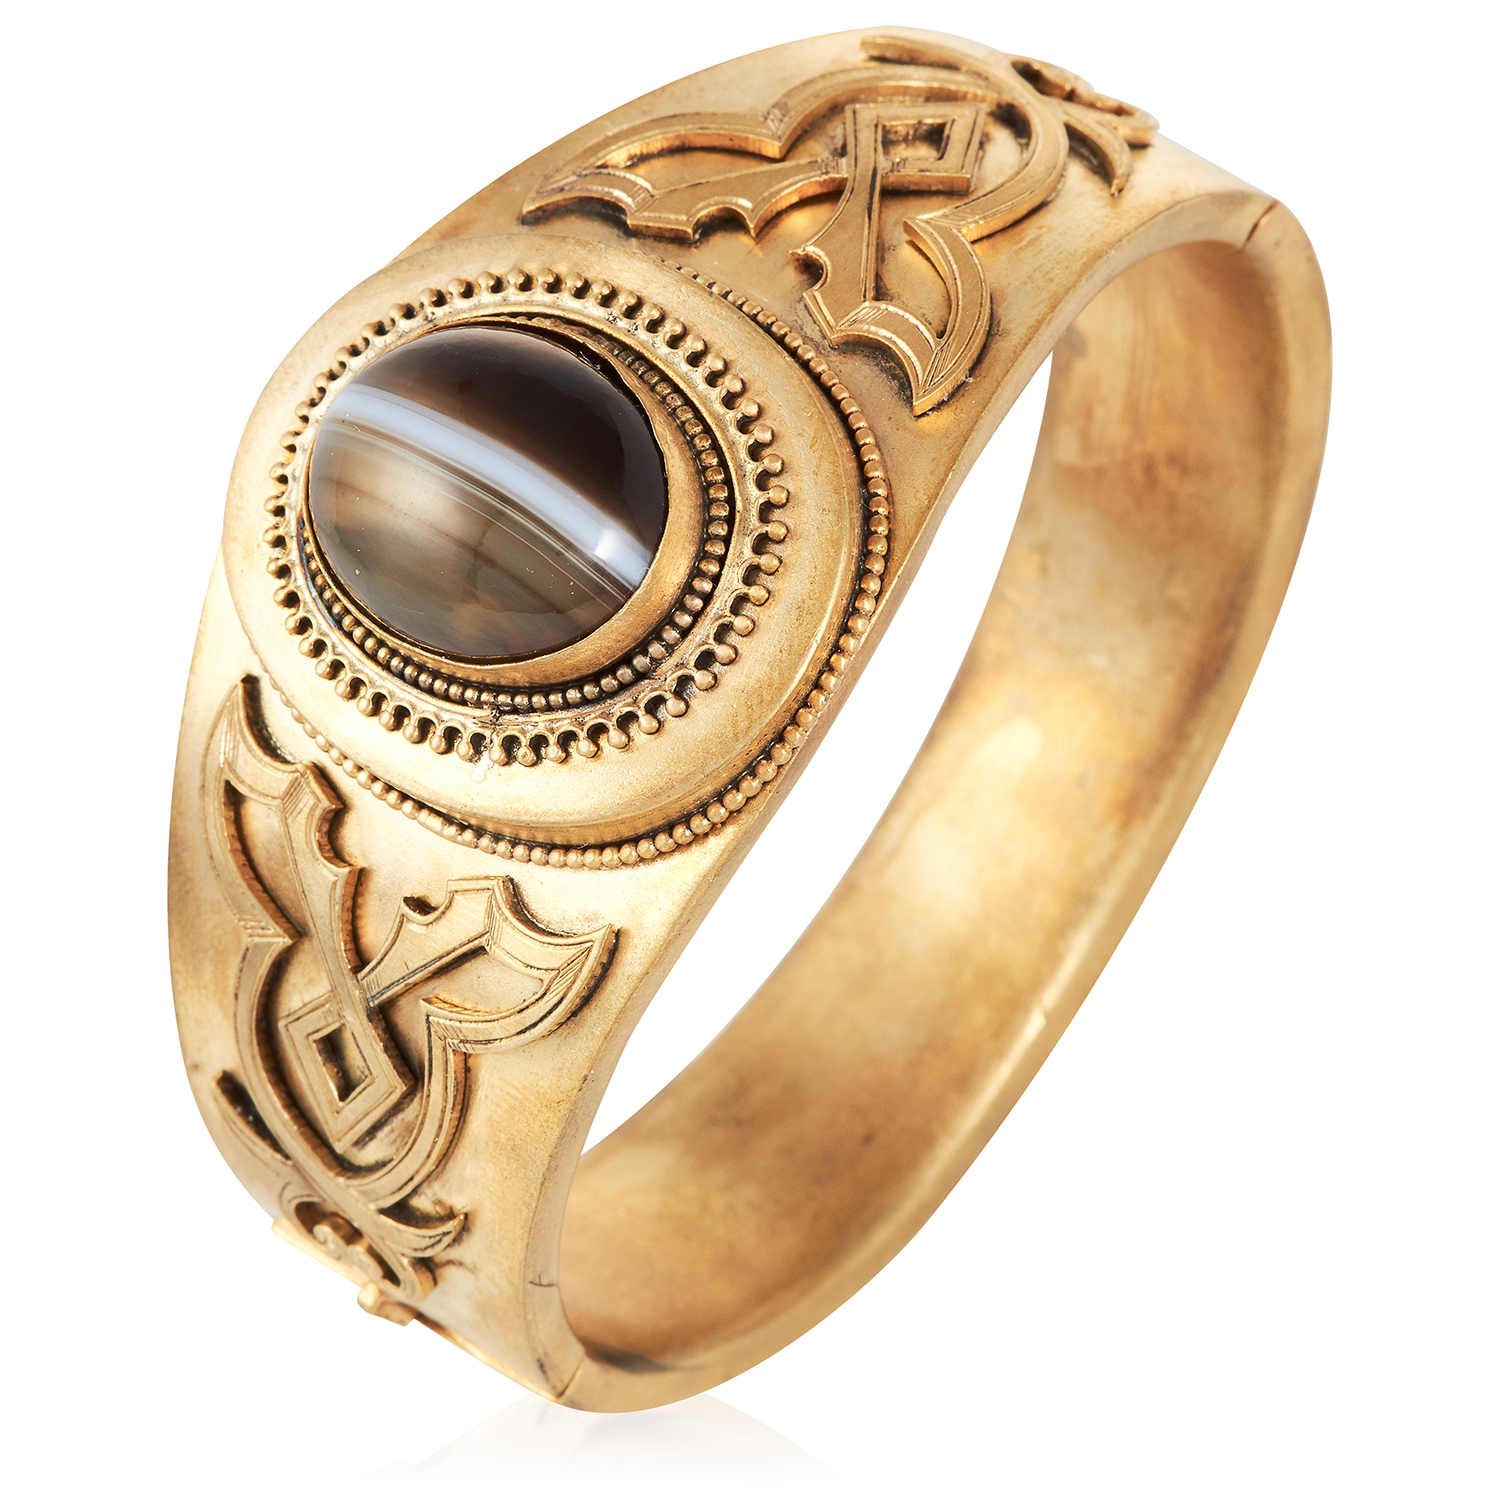 AN ANTIQUE BANDED AGATE BANGLE in yellow gold, set with a cabochon banded agate in scrolling design,